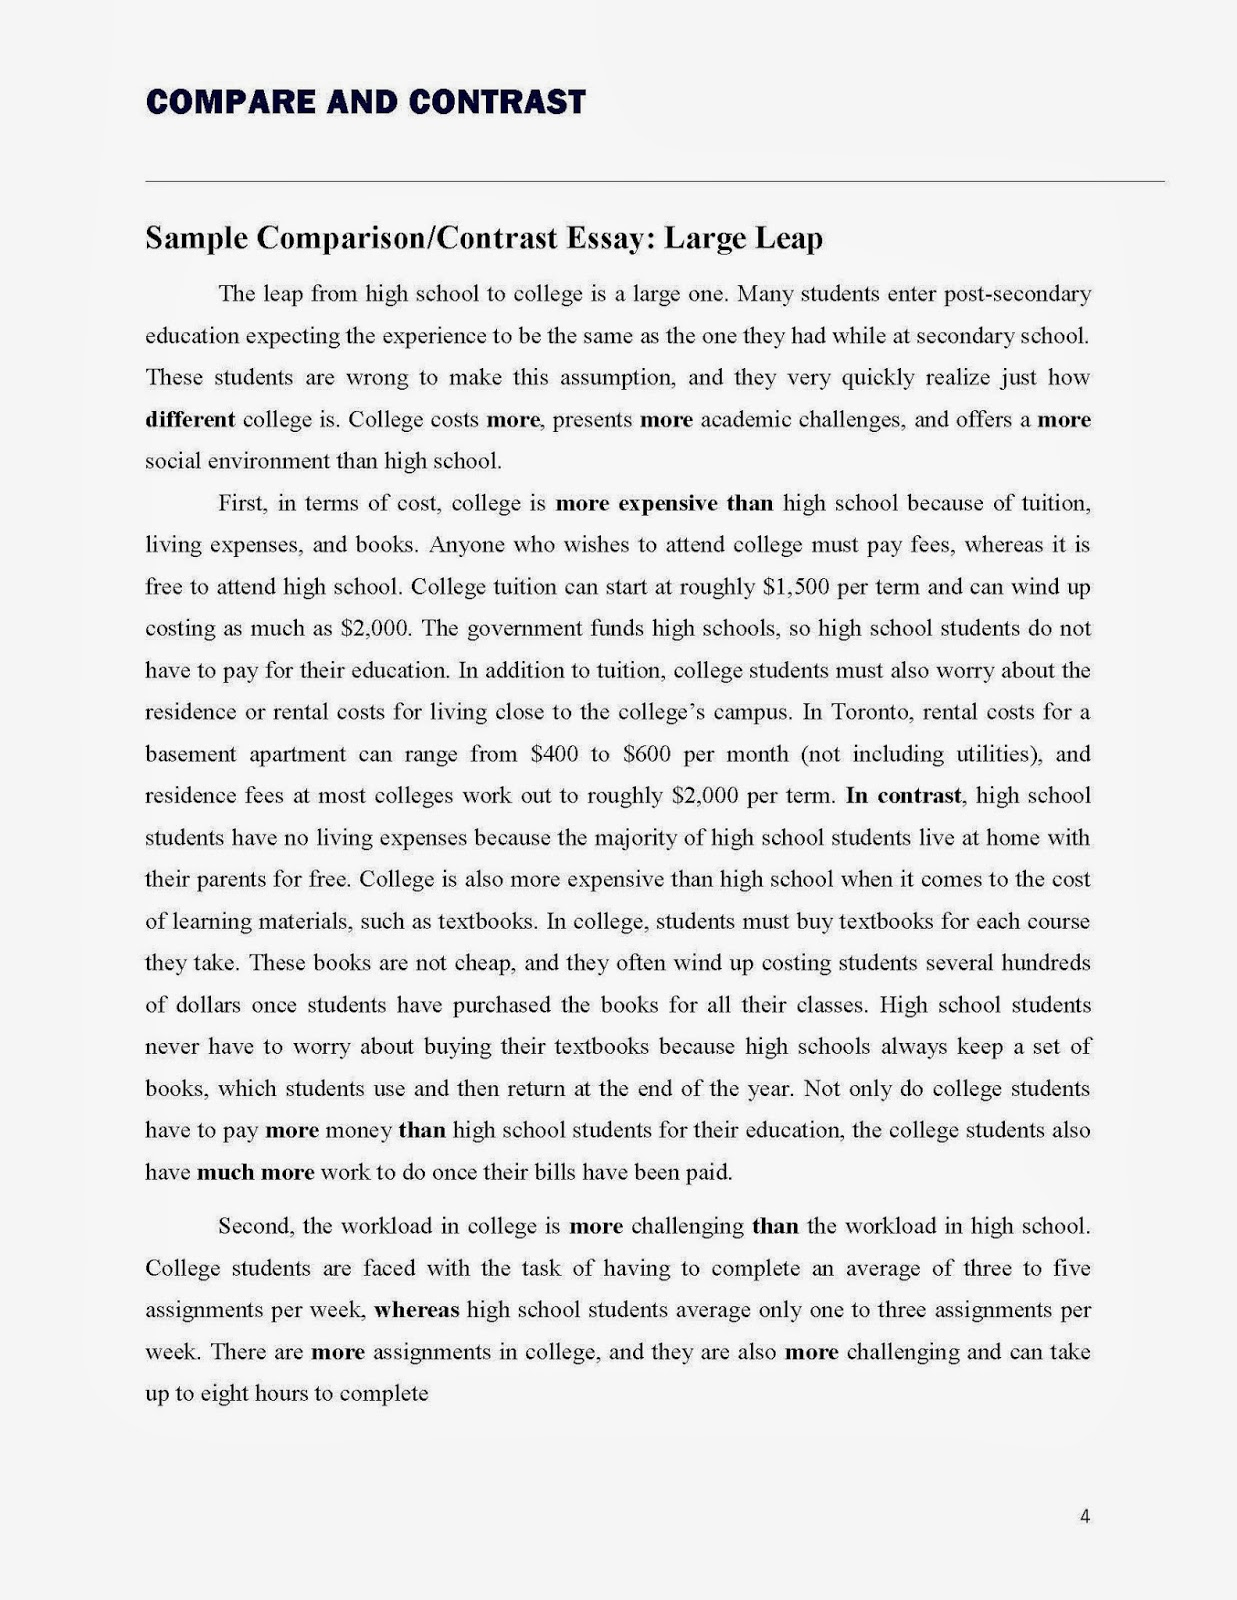 011 Compare And Contrast Essay Compareandcontrastessay Page 4h125 Frightening Topics Outline Doc Sample 4th Grade Full